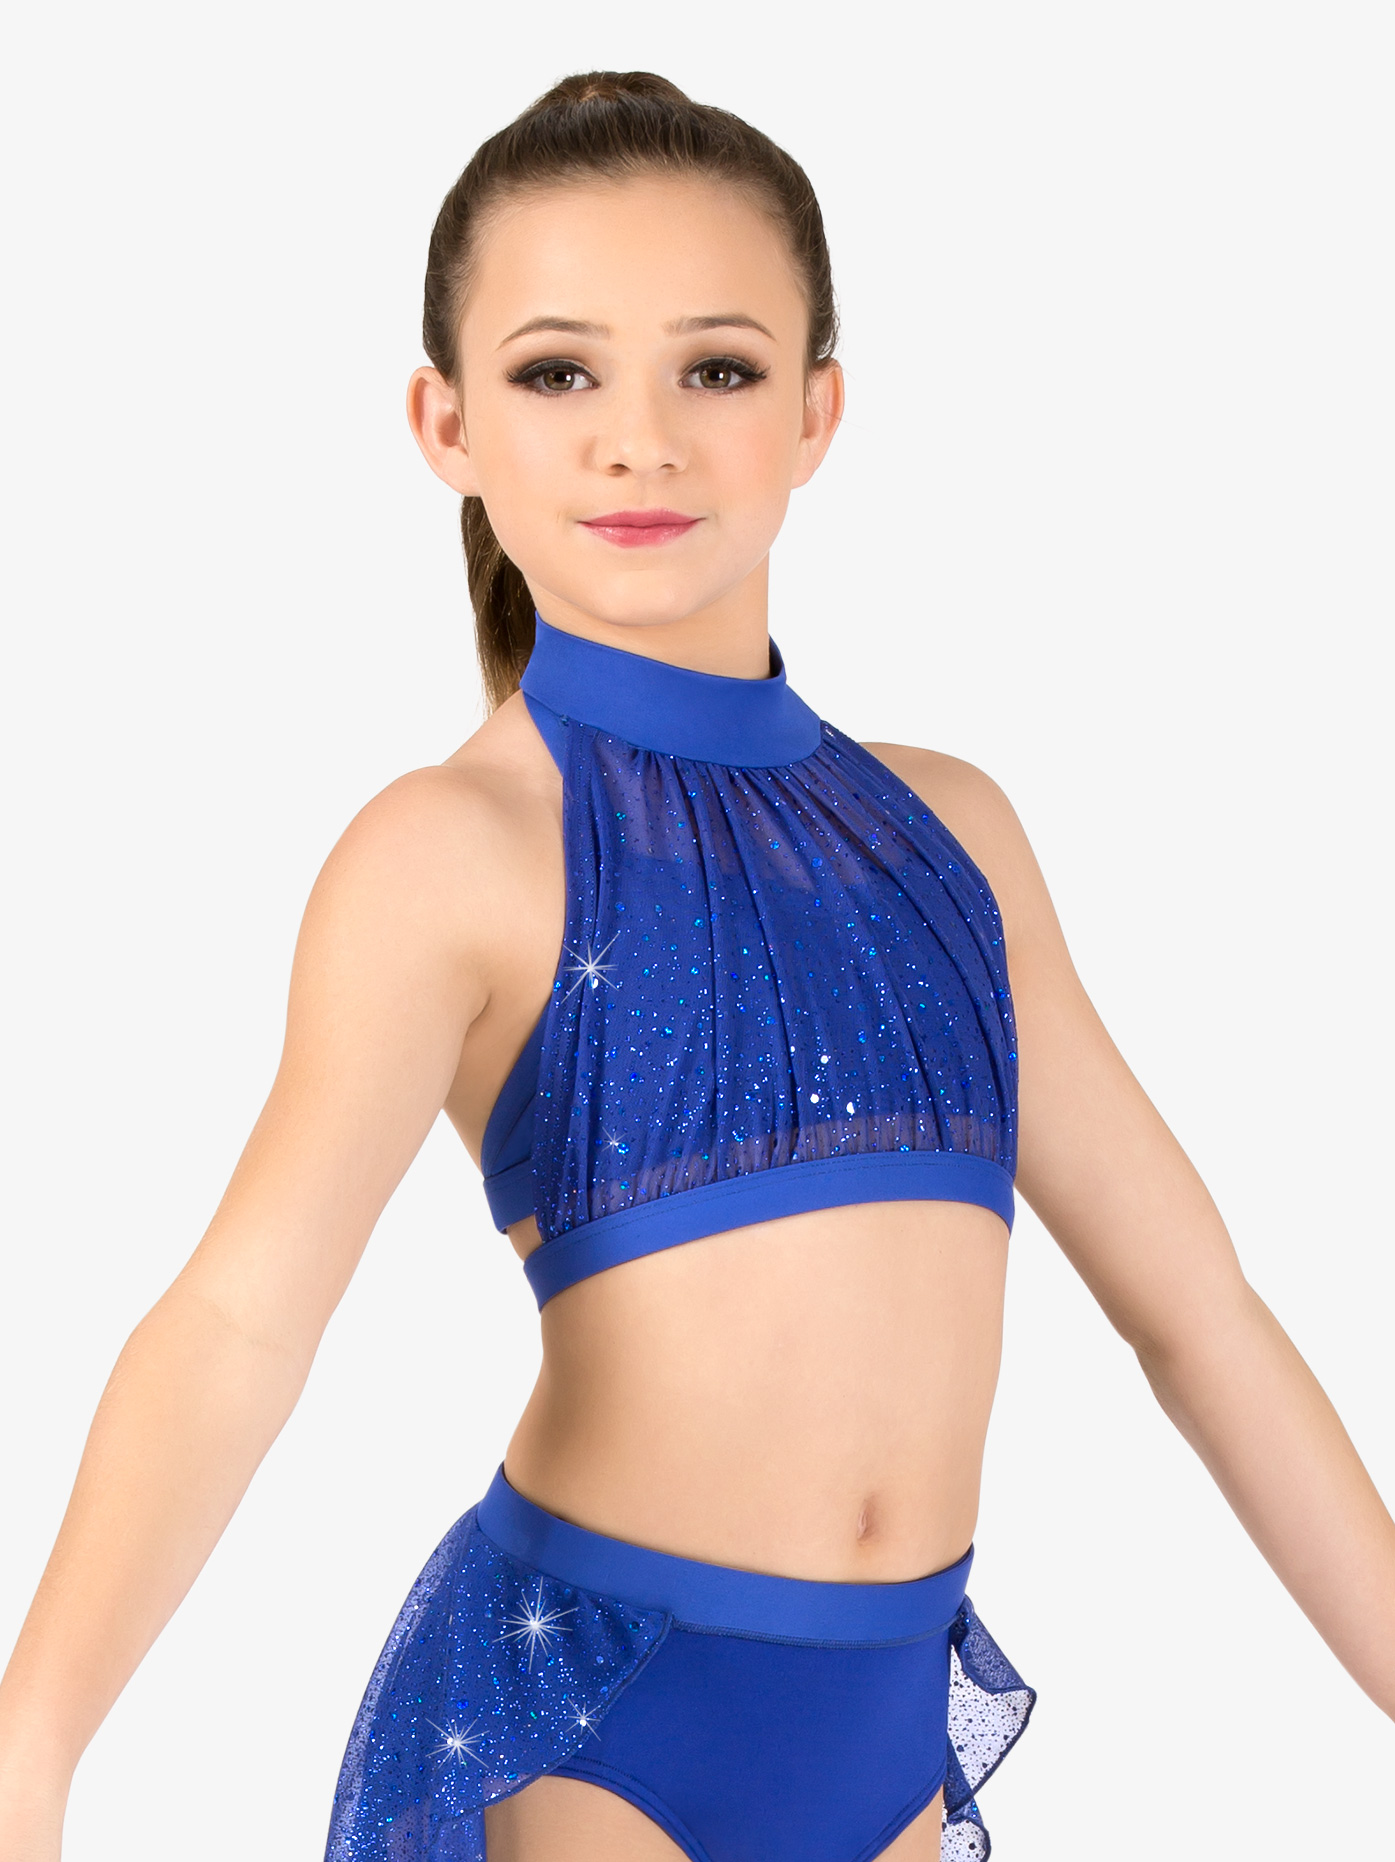 Body Wrappers Girls Performance Sheer Twinkle Mesh Halter Bra Top TW300